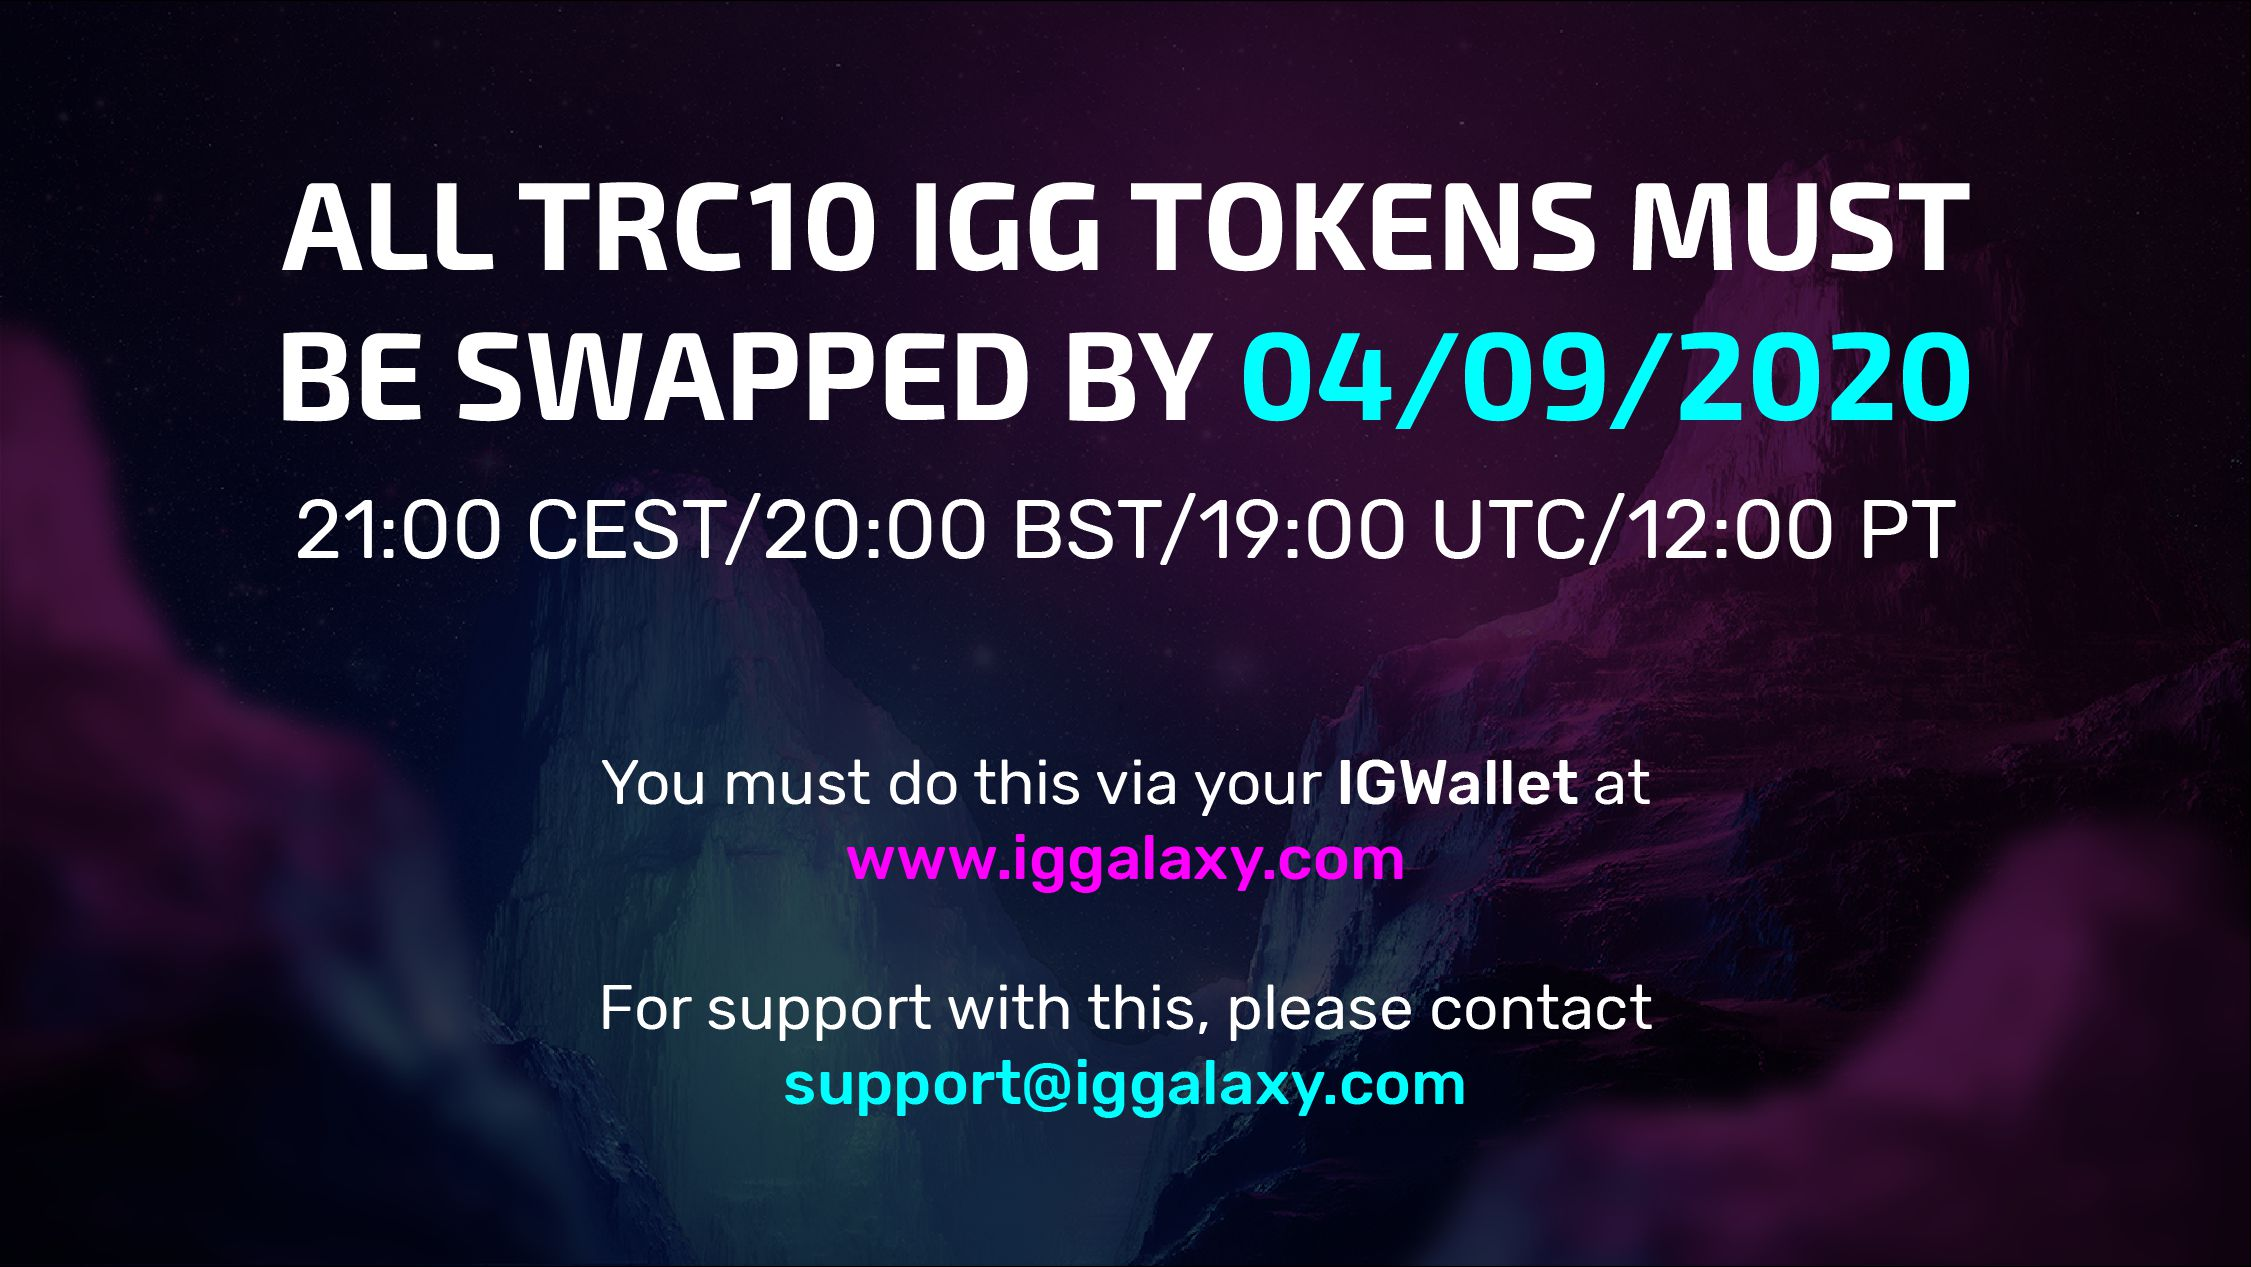 Convert your old TRC10 IGG tokens before the deadline!